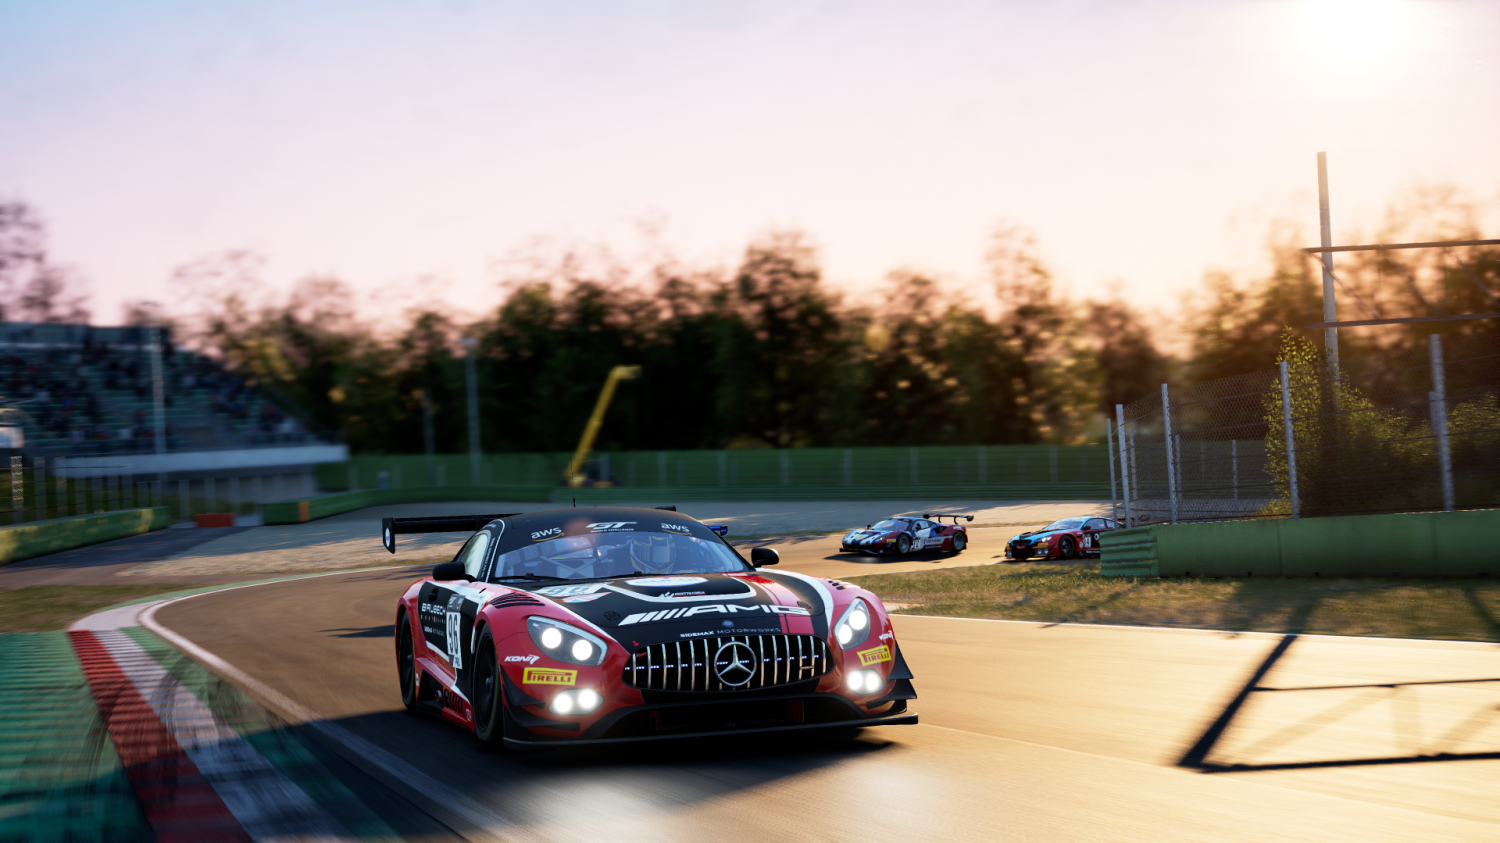 Esports Title to be Decided at Imola Circuit This Sunday